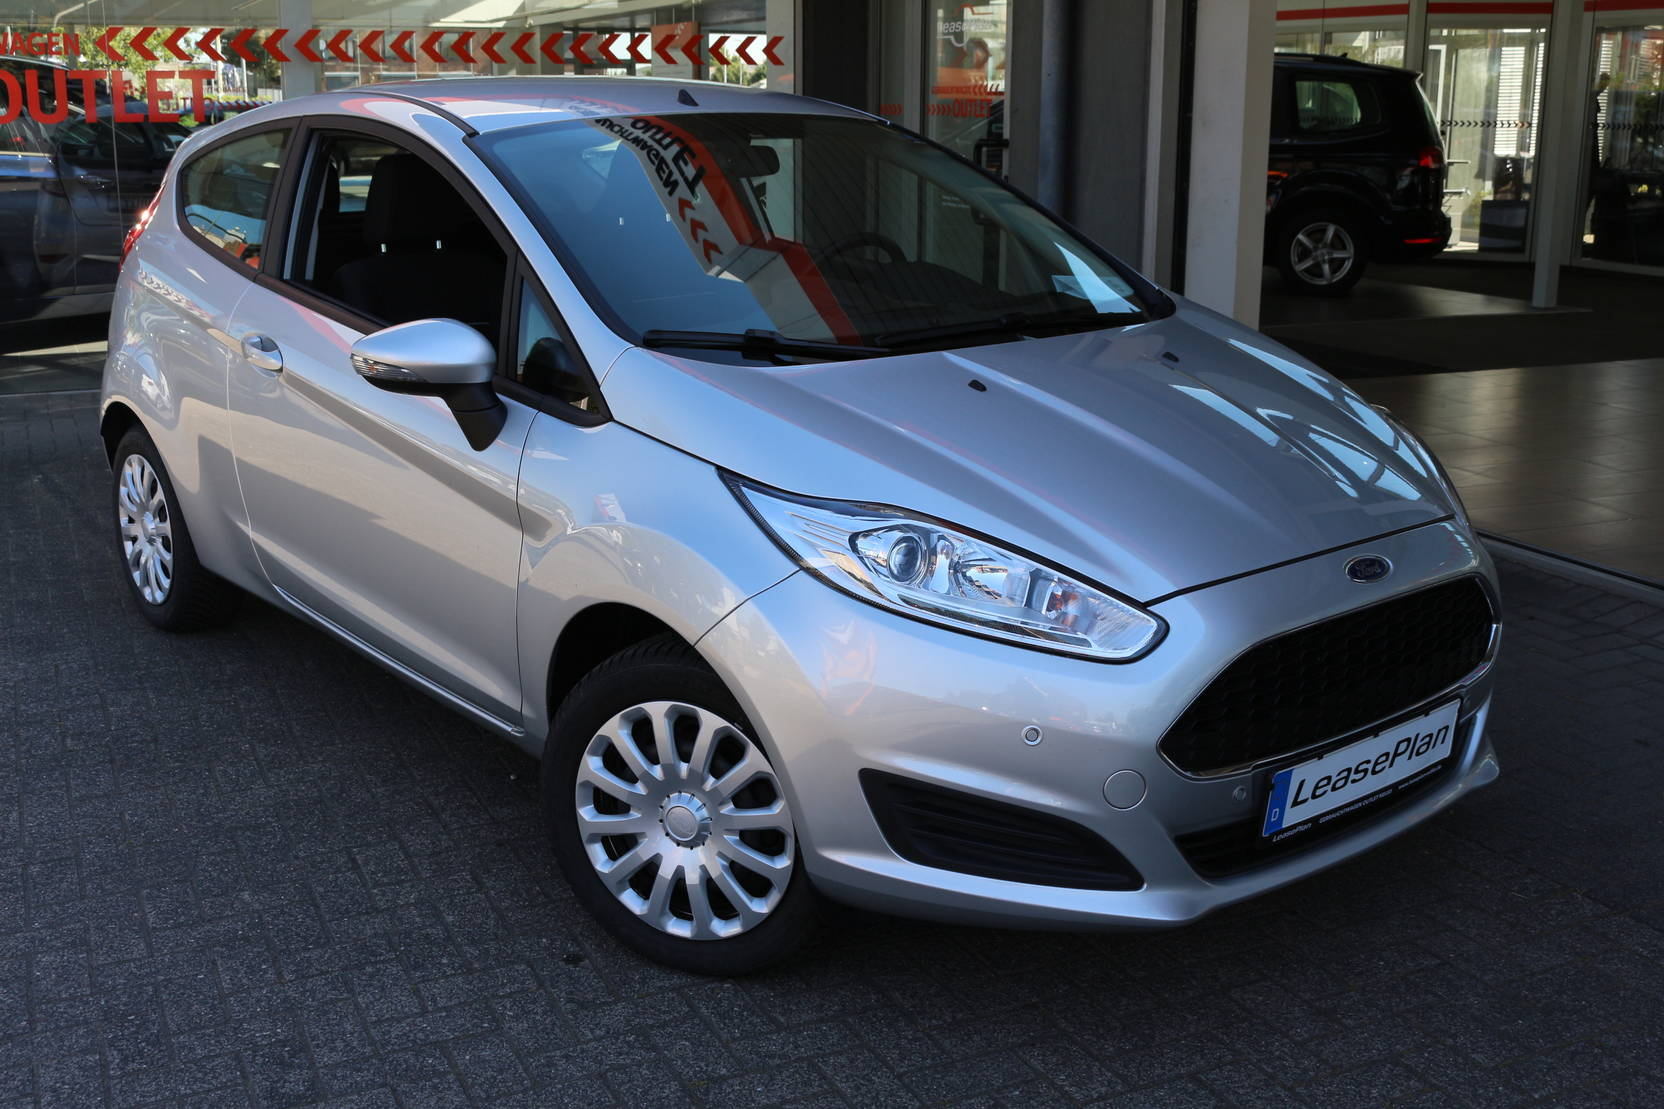 Ford Fiesta 1.0, SYNC Edition (621190) detail1